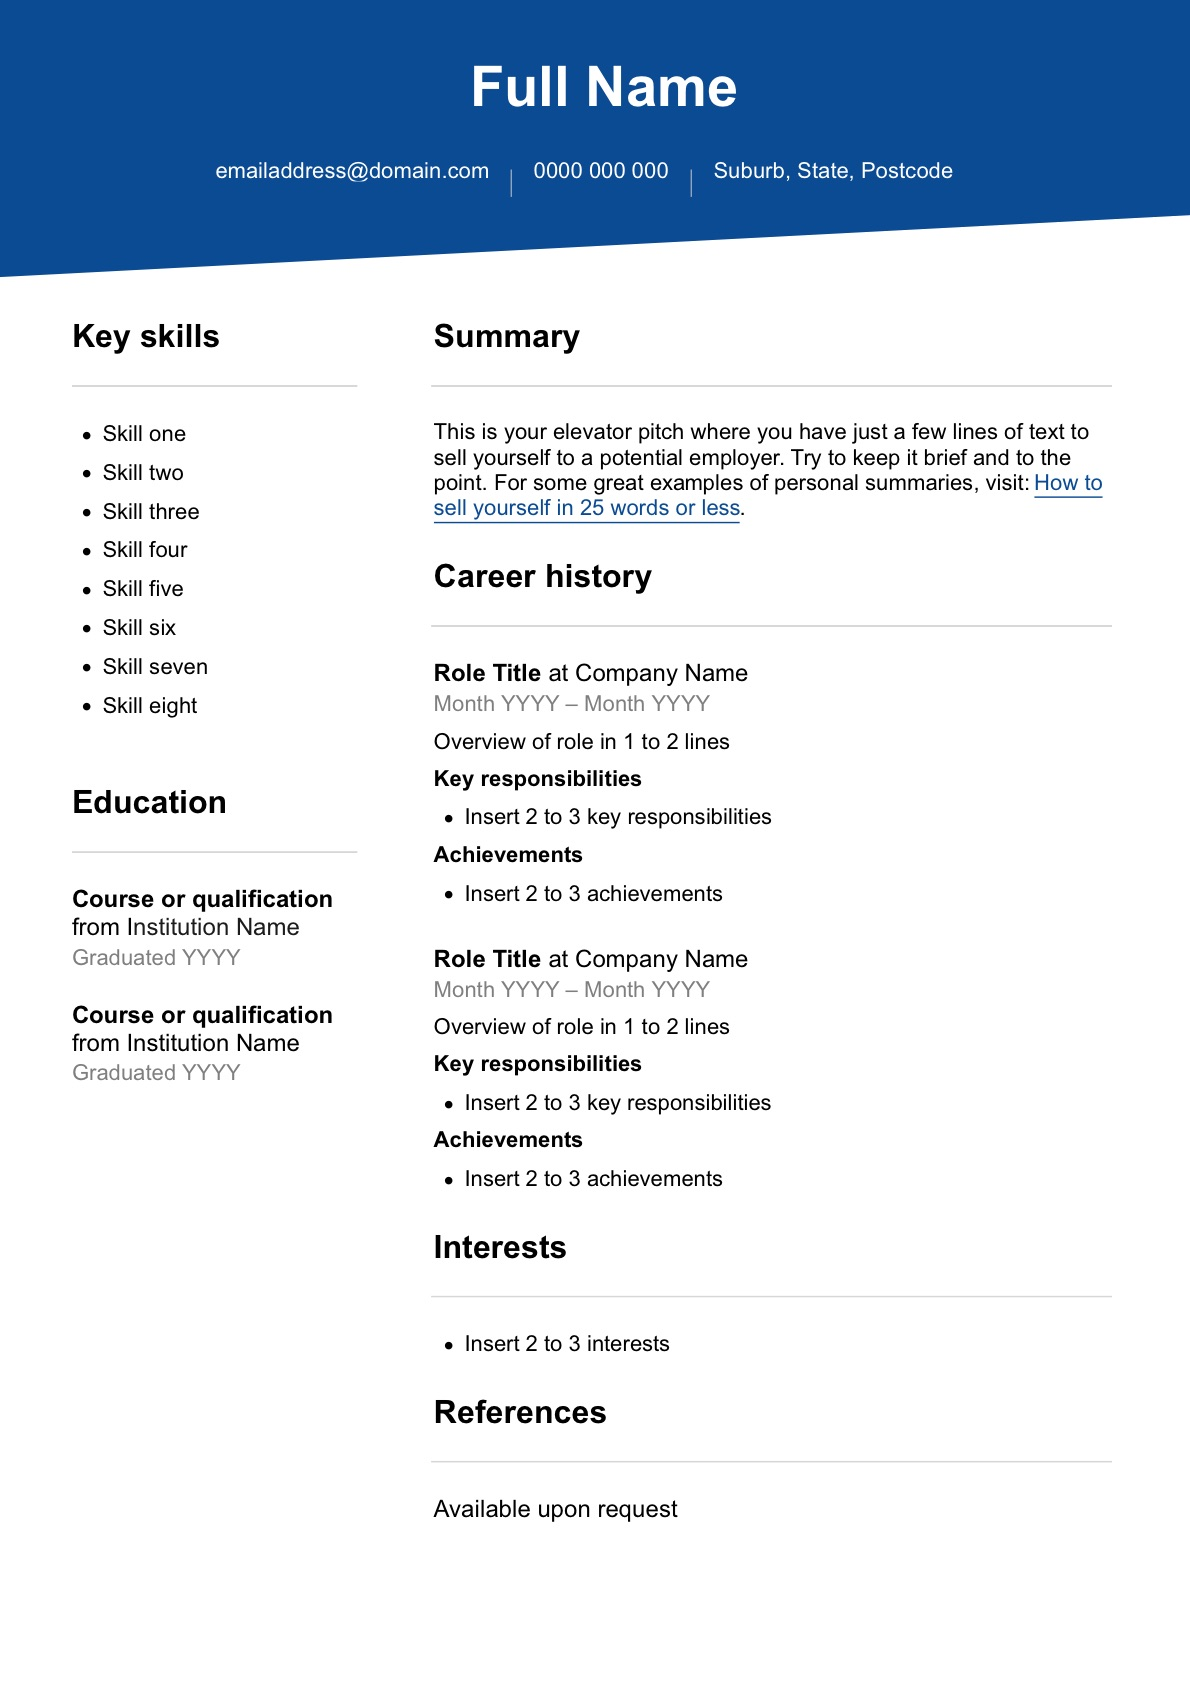 free resume template seek career advice writing australian style examples preview Resume Resume Writing Australian Style Examples